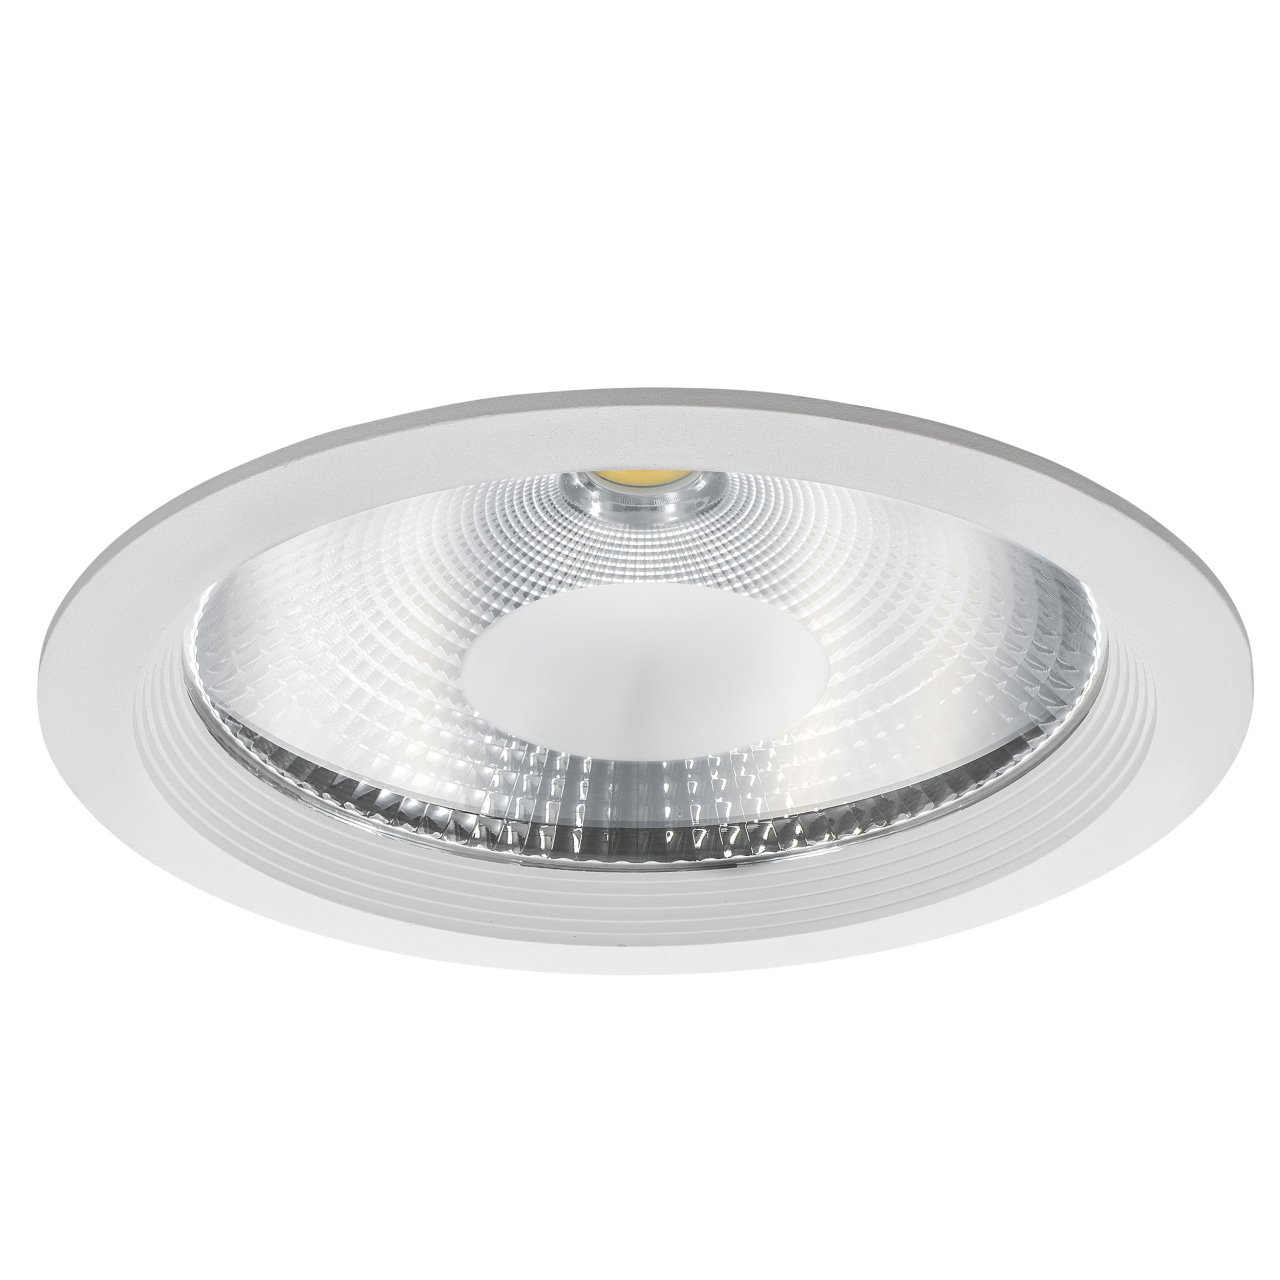 Светильник Forto LED 50W 4500LM 120G 3000K Lightstar 223502